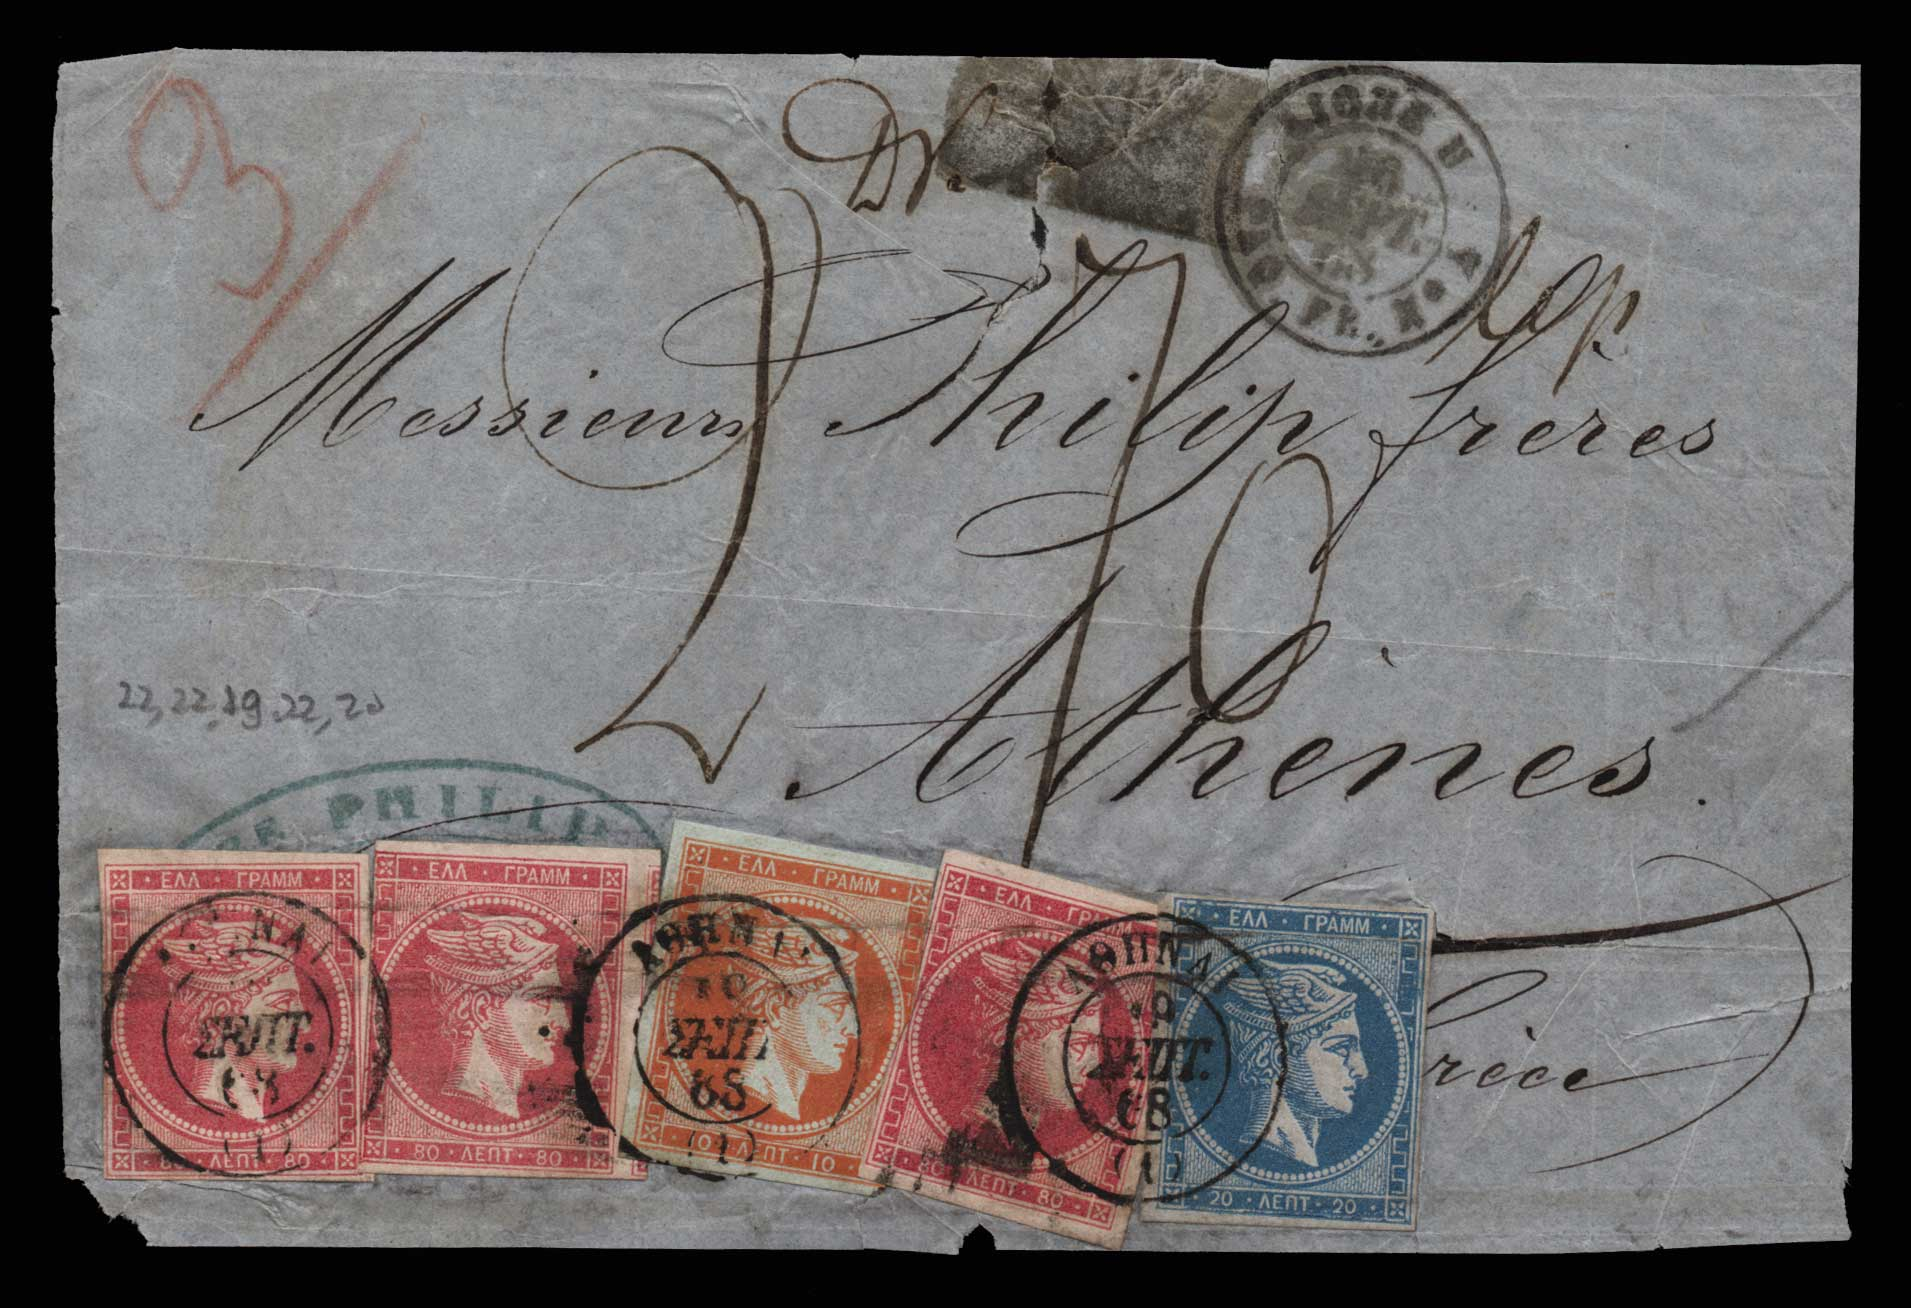 Lot 166 - -  LARGE HERMES HEAD 1862/67 consecutive athens printings -  Athens Auctions Public Auction 70 General Stamp Sale